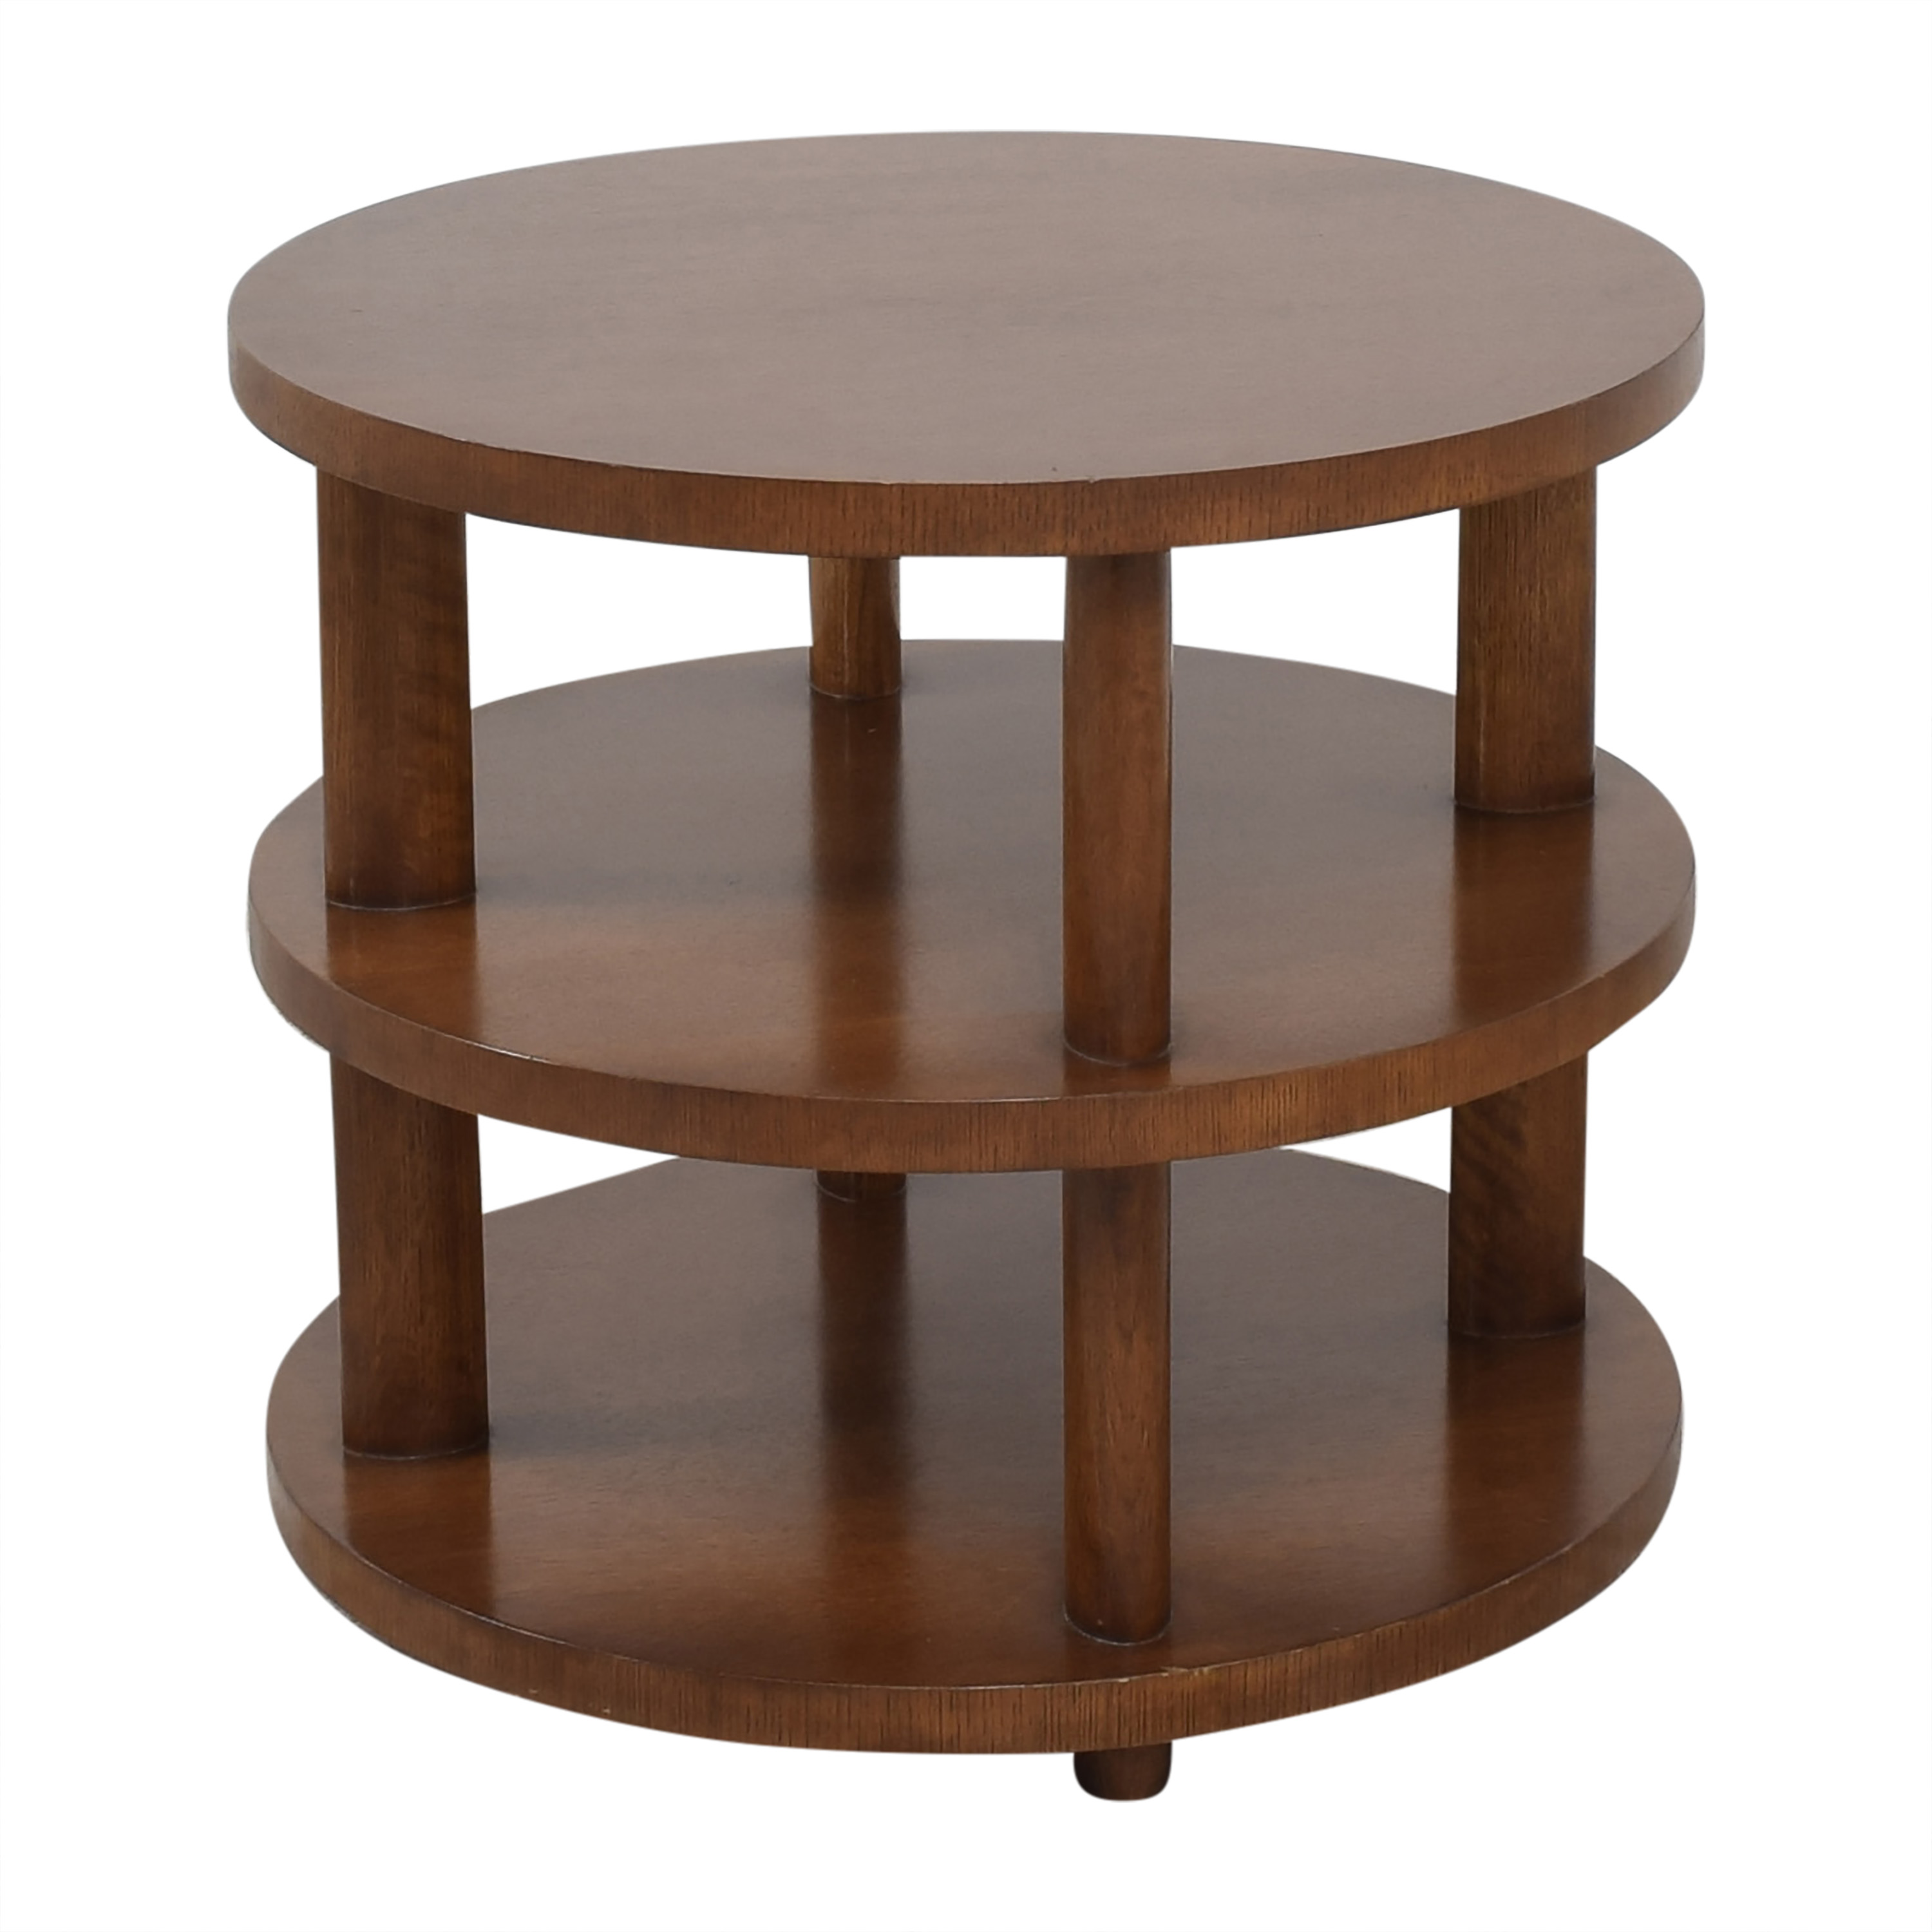 Baker Furniture Baker Furniture Barbara Barry Round Tiered Occasional Table brown